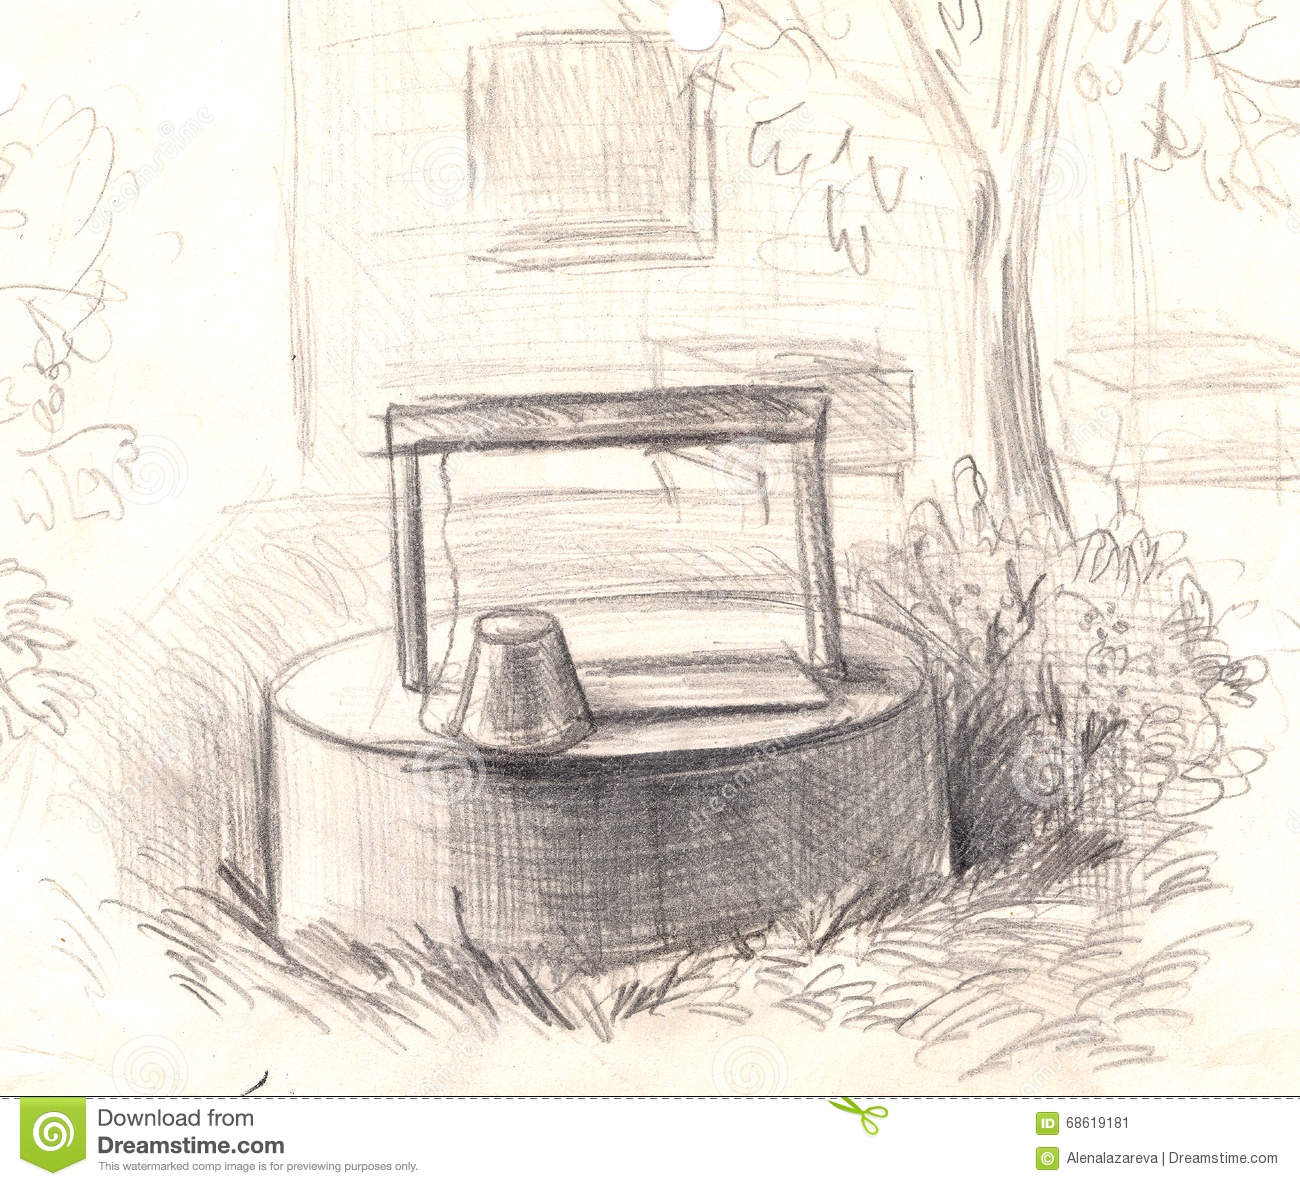 Hand painted illustration pencil drawing old water well